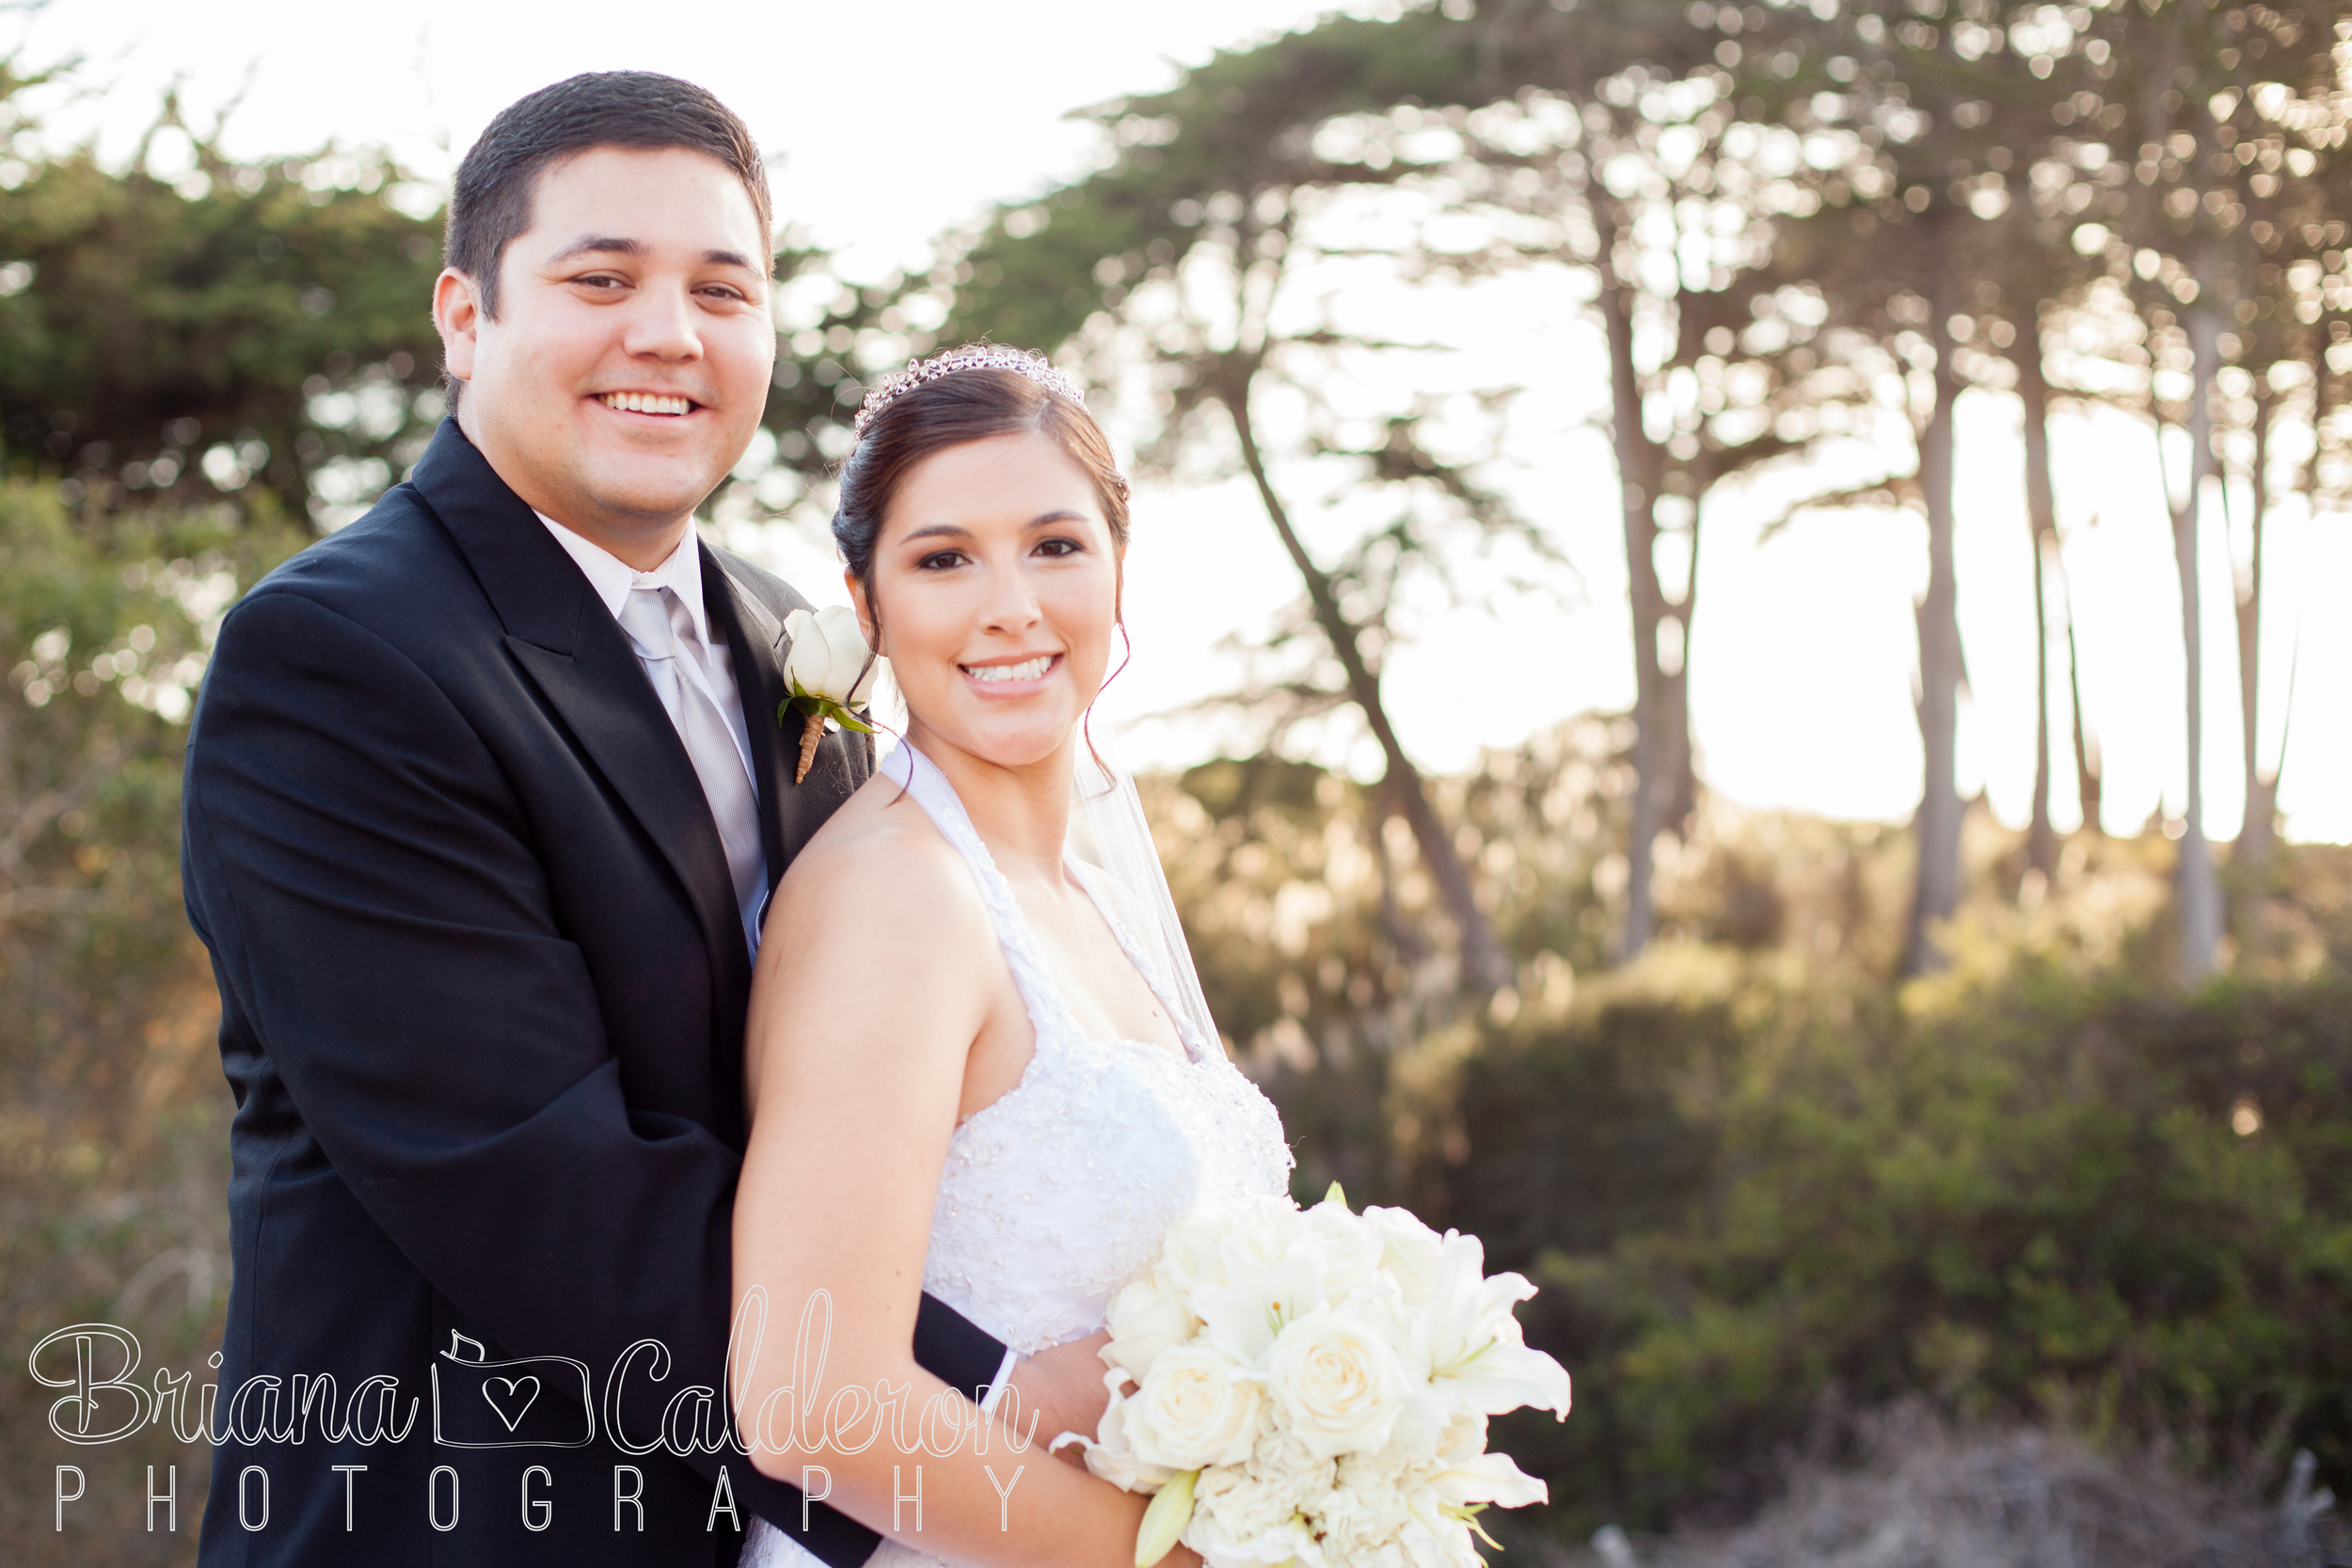 Seascape Beach Resort wedding in Aptos, CA. Photos by Briana Calderon Photography based in the San Francisco Bay Area.